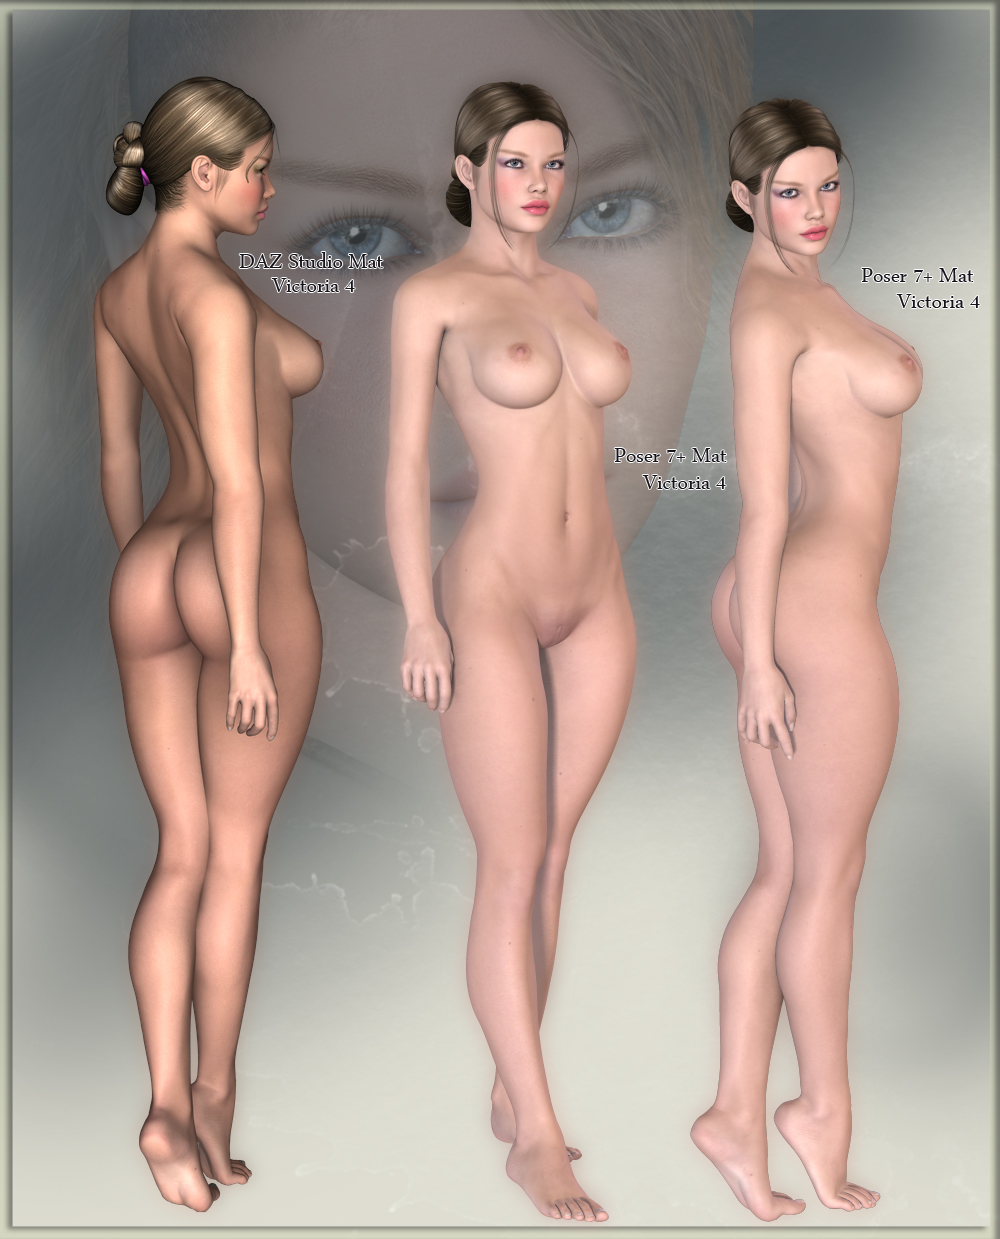 Daz 3d female models nude sex pic